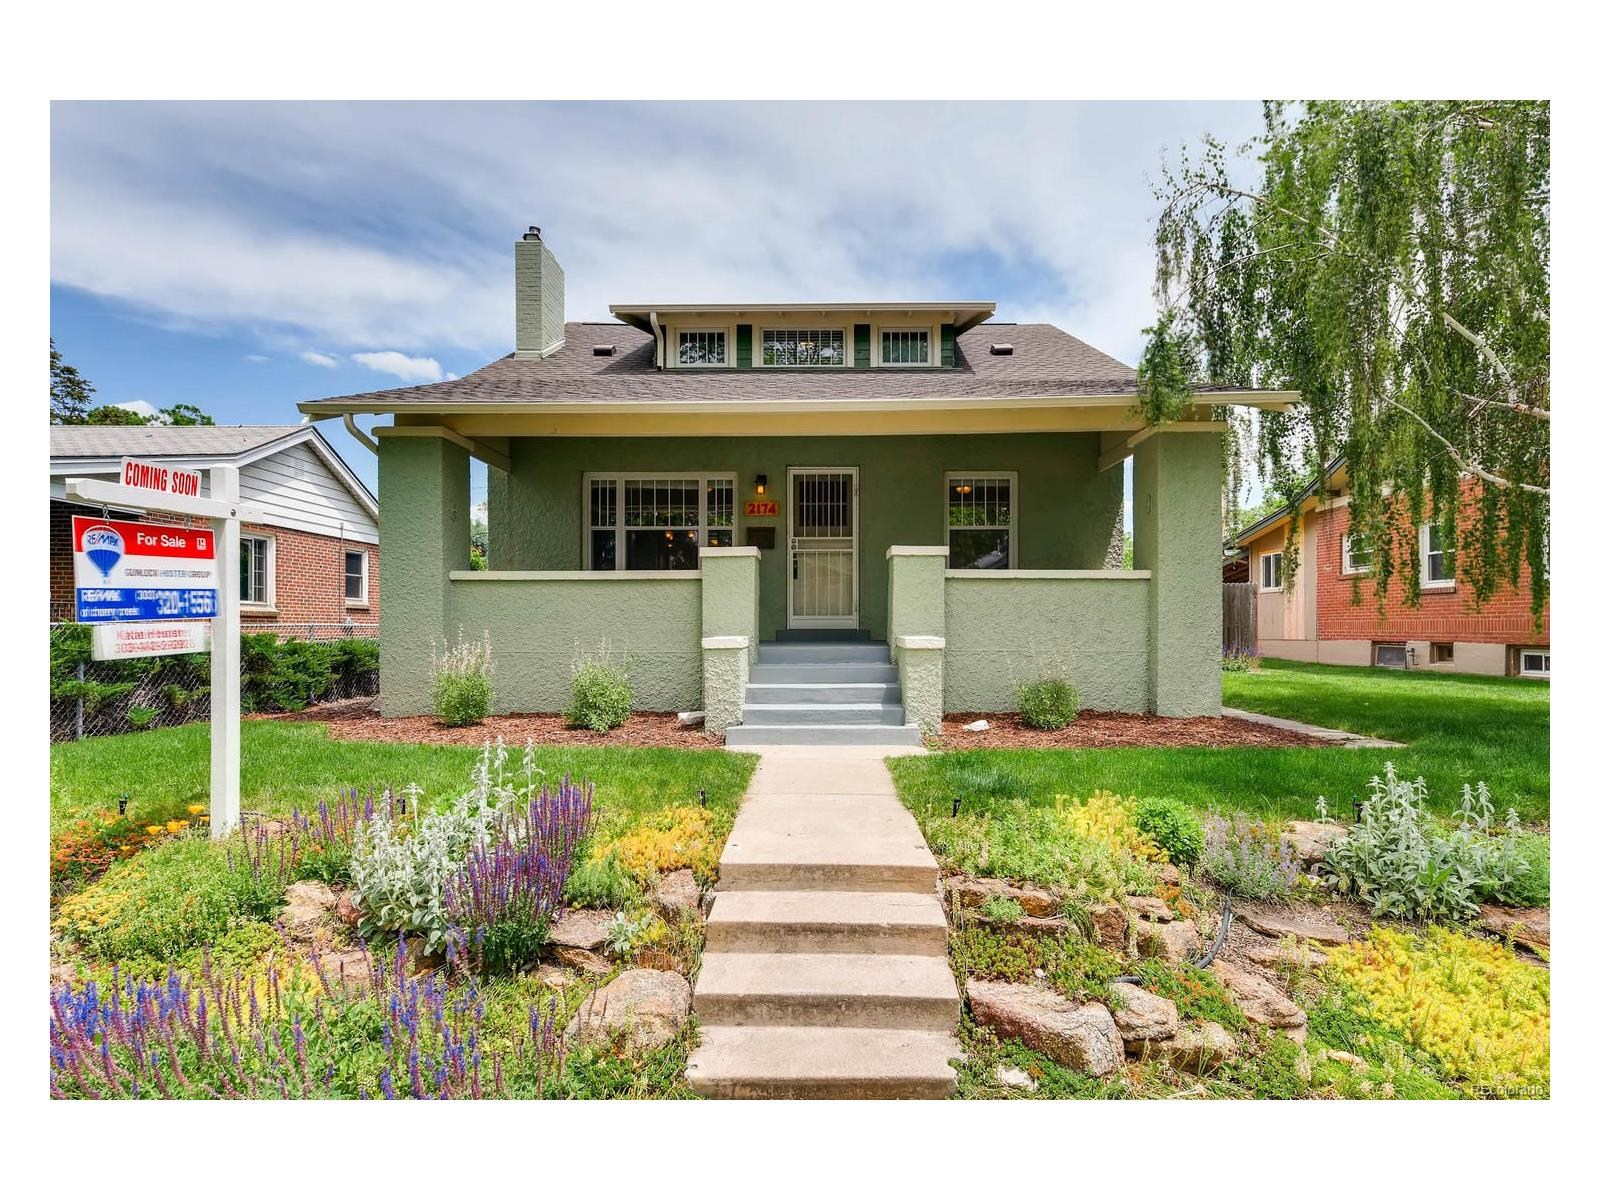 Sold! Beautiful Bungalow in Harvard Gulch